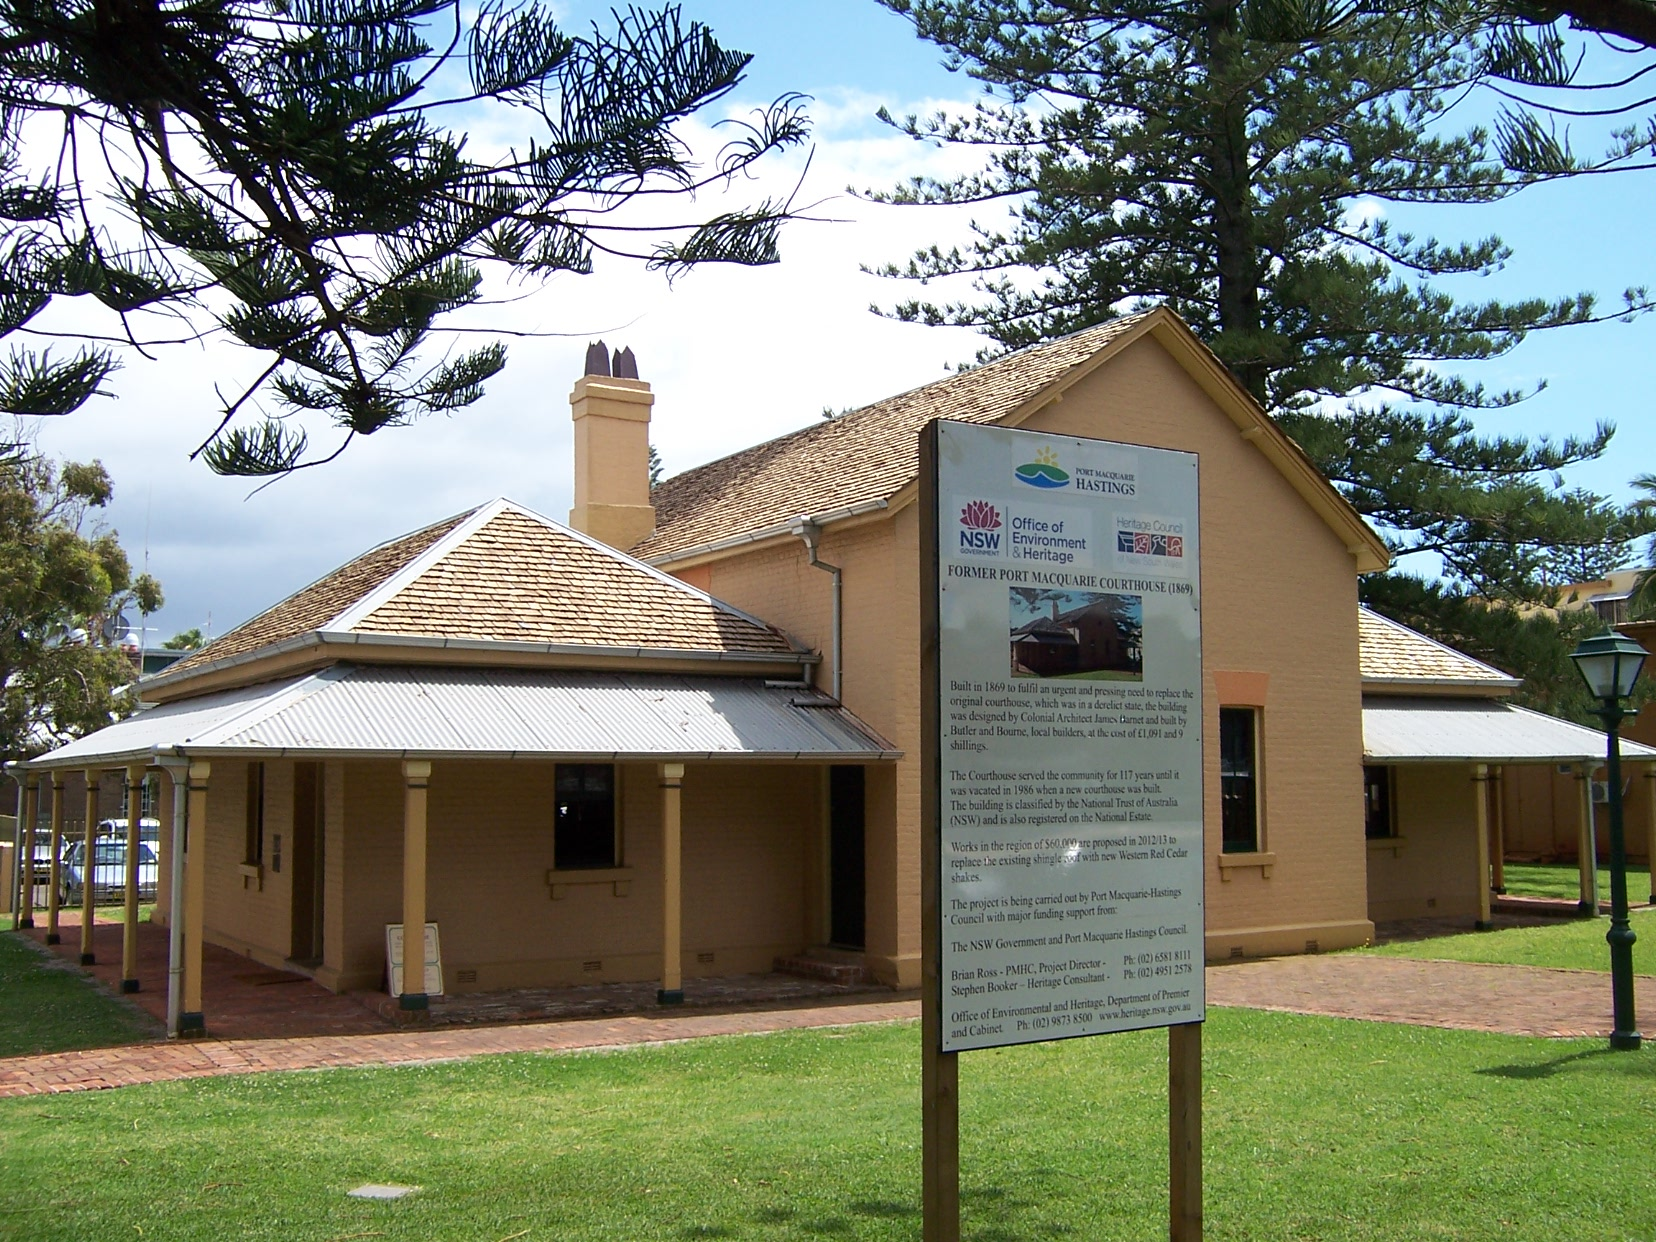 Historic Courthouse Port Macquarie